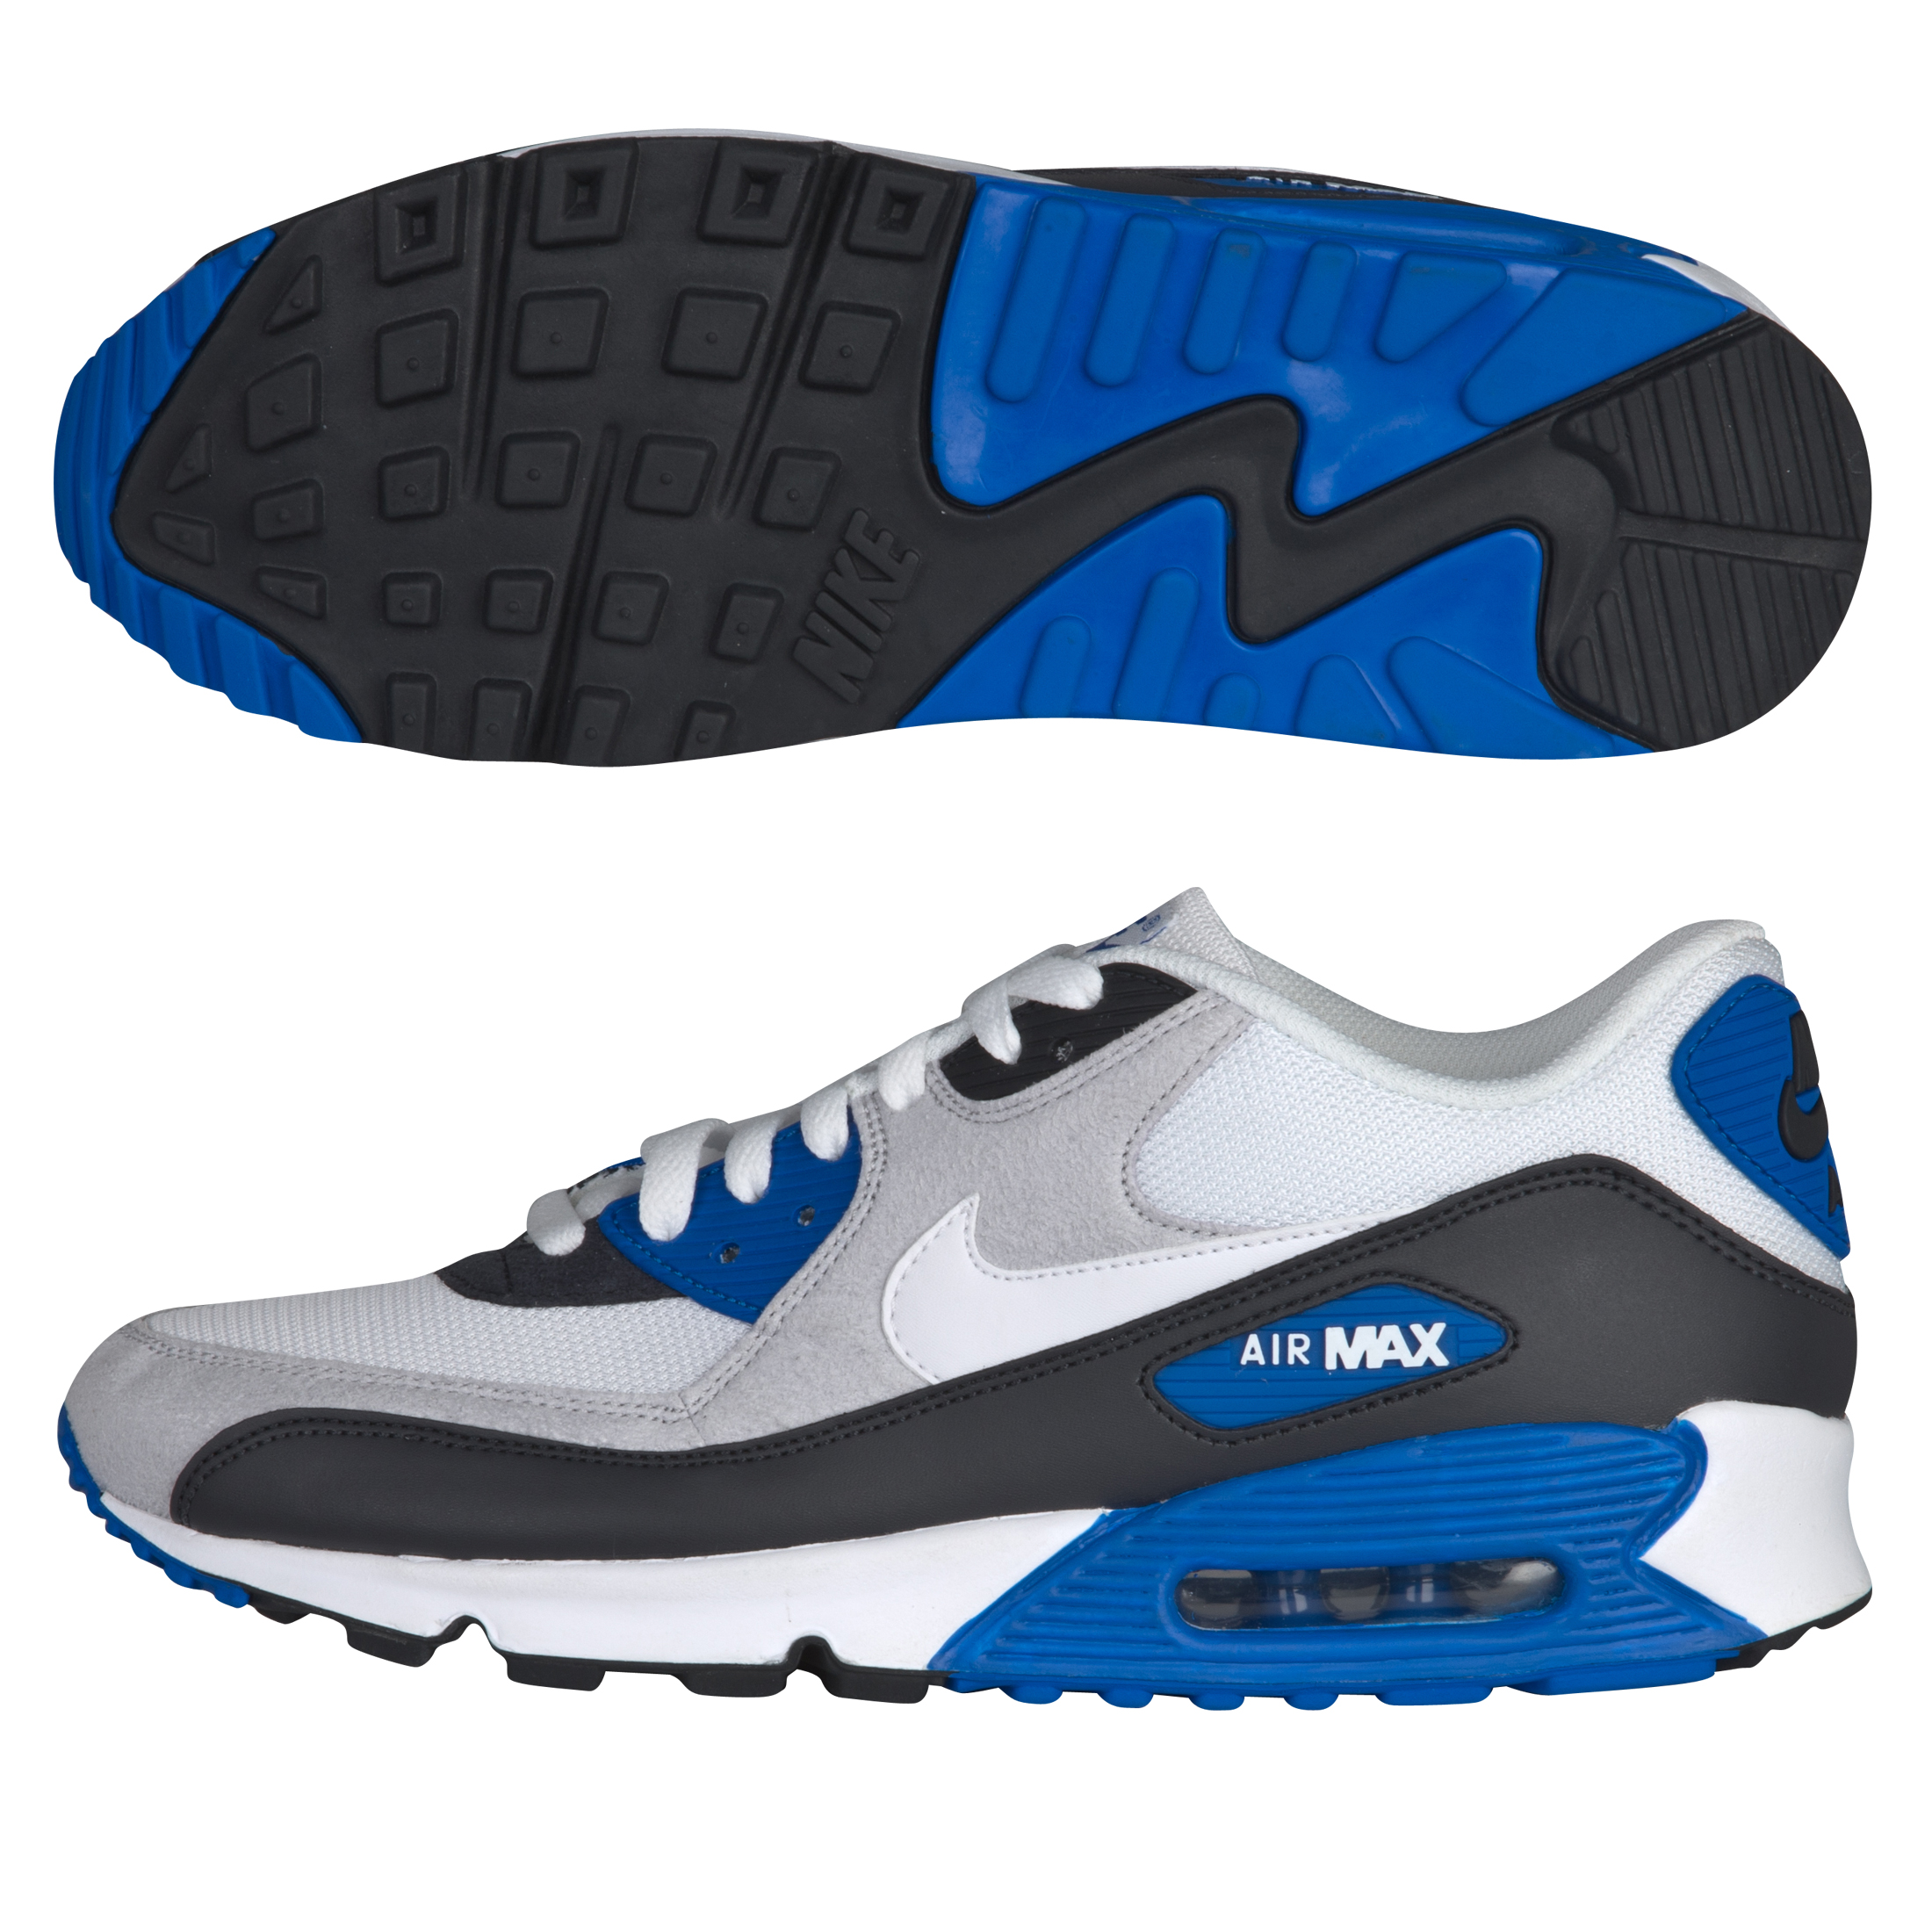 Nike Air Max 90 Trainers - Anthracite/White/Obsidian